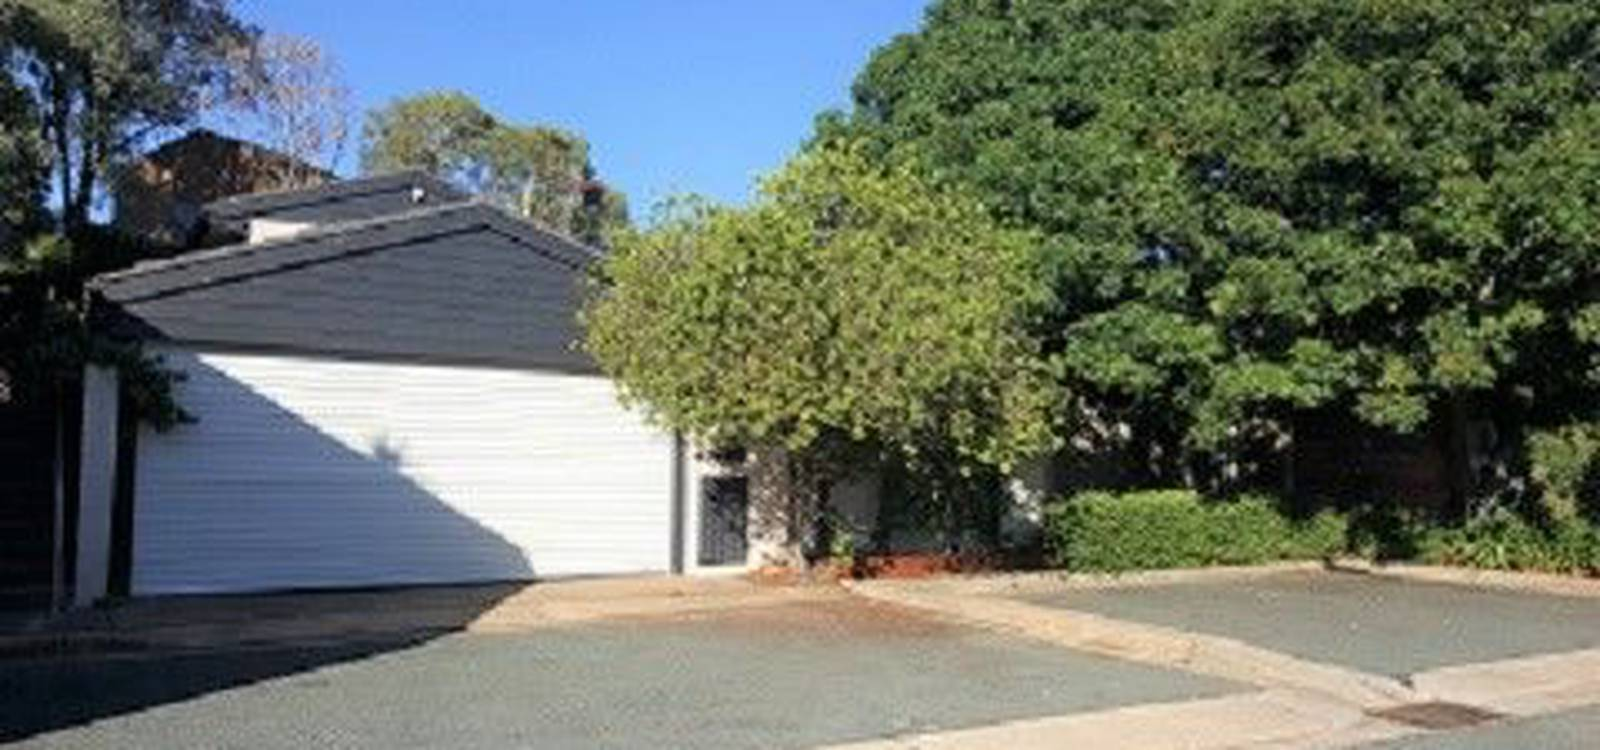 10 Oldham Place SWINGER HILL, ACT 2606 - photo 1